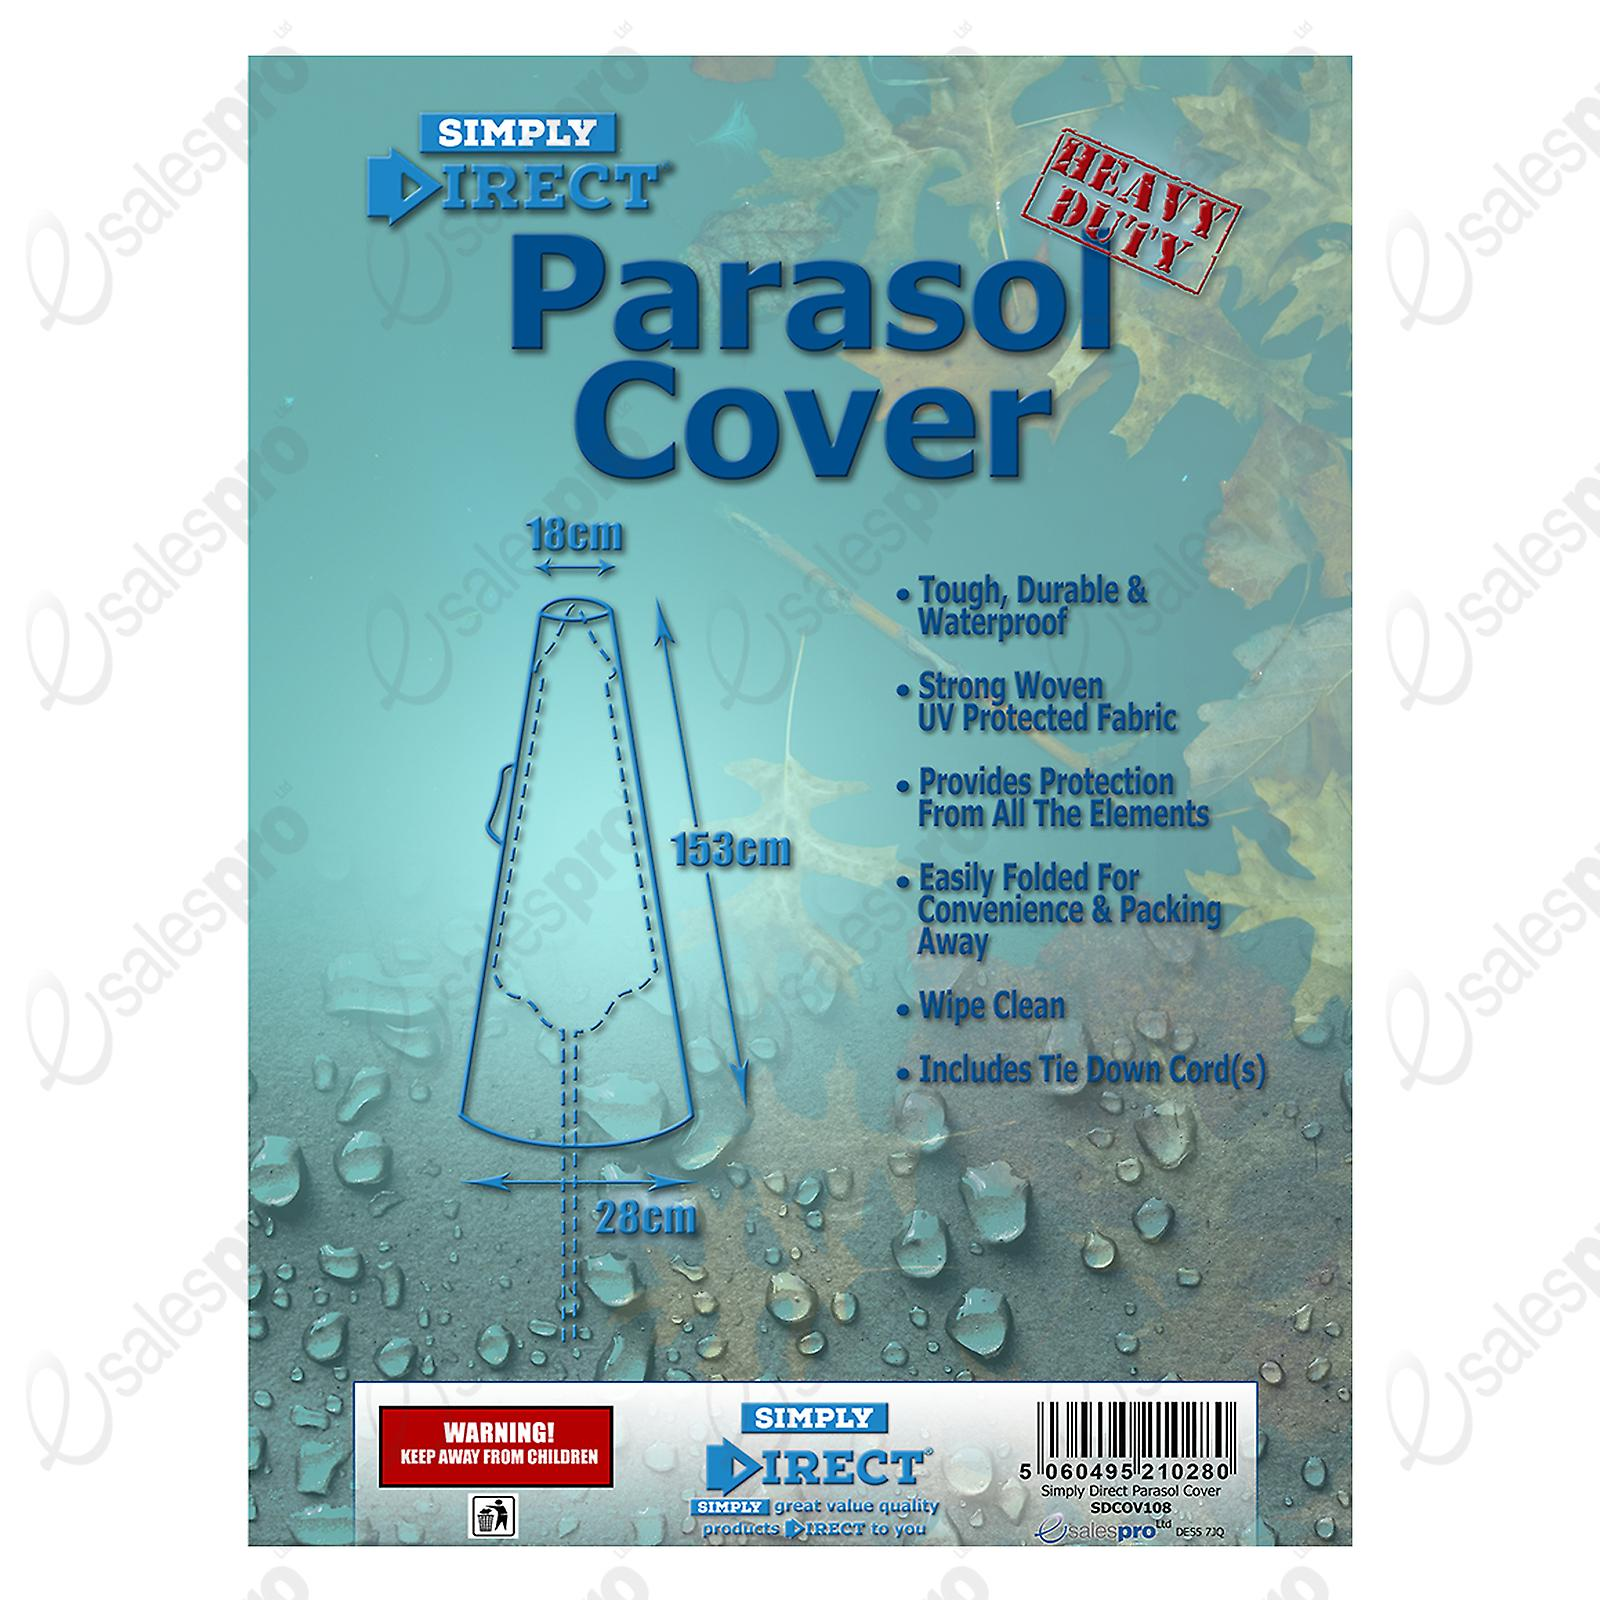 Simply Direct Parasol Cover - Waterproof WeatherProof Outdoor Protector